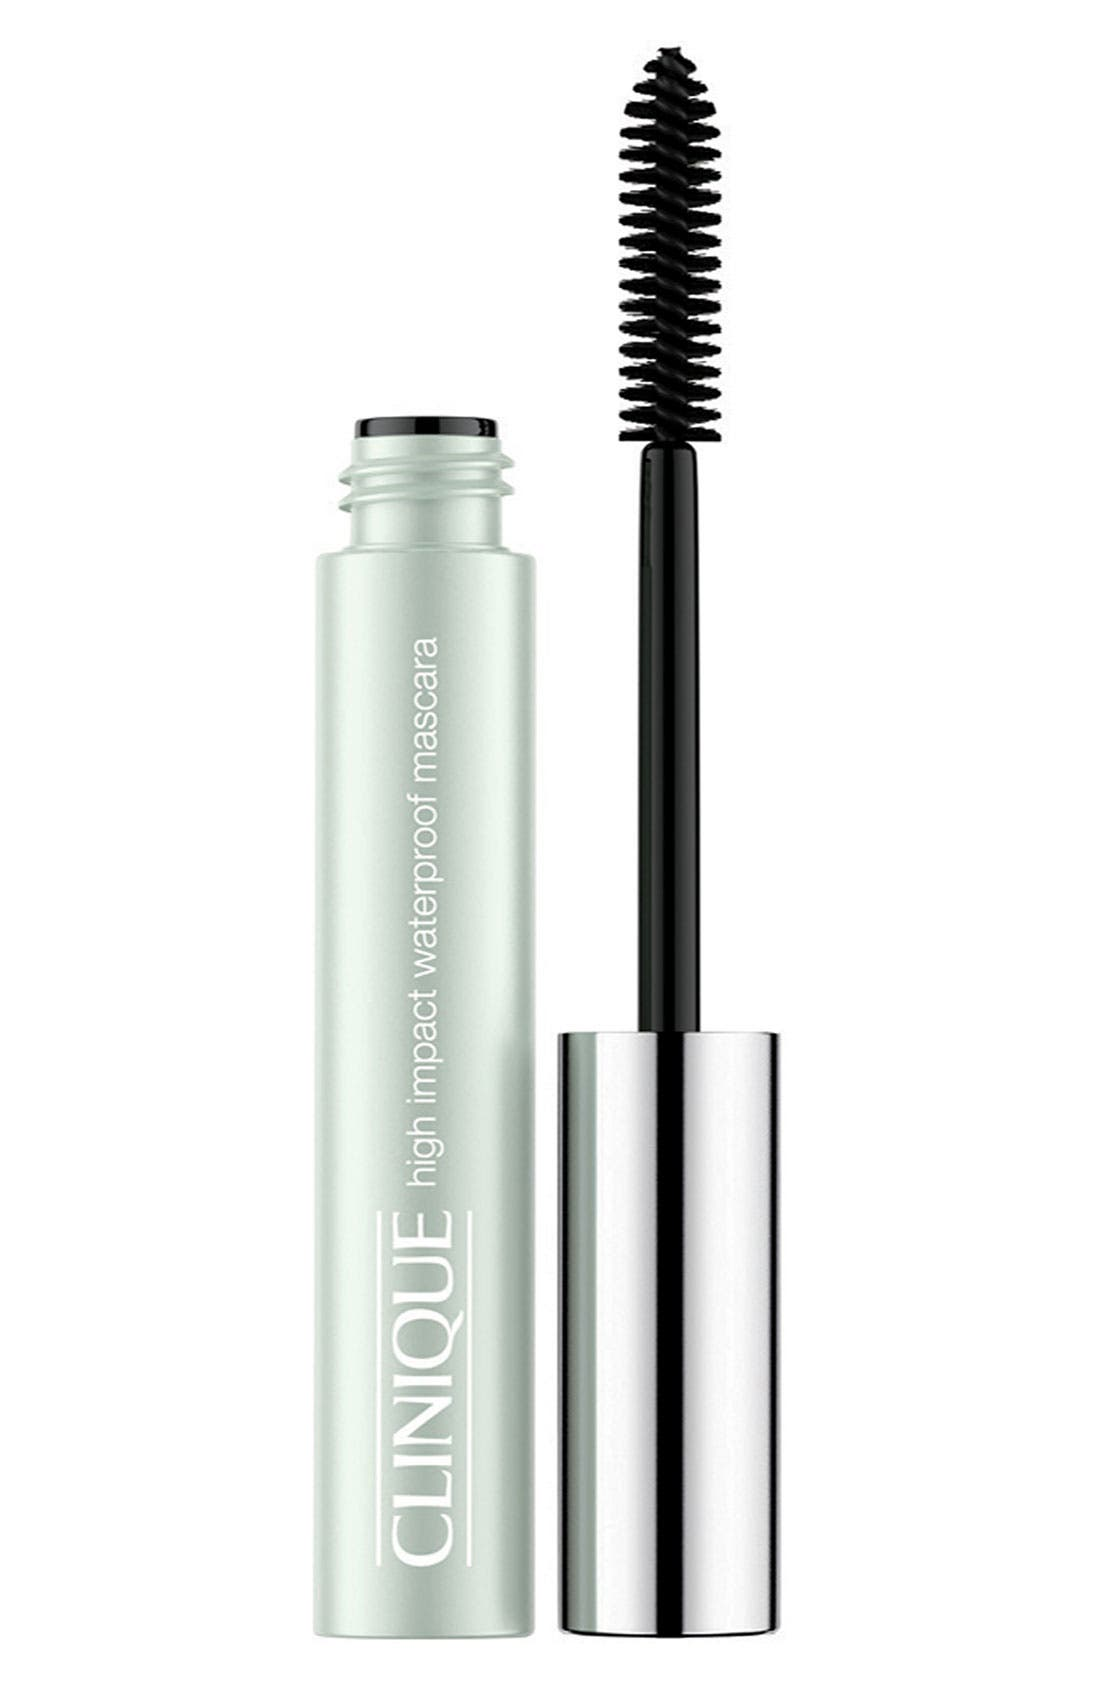 Clinique 'High Impact' Waterproof Mascara